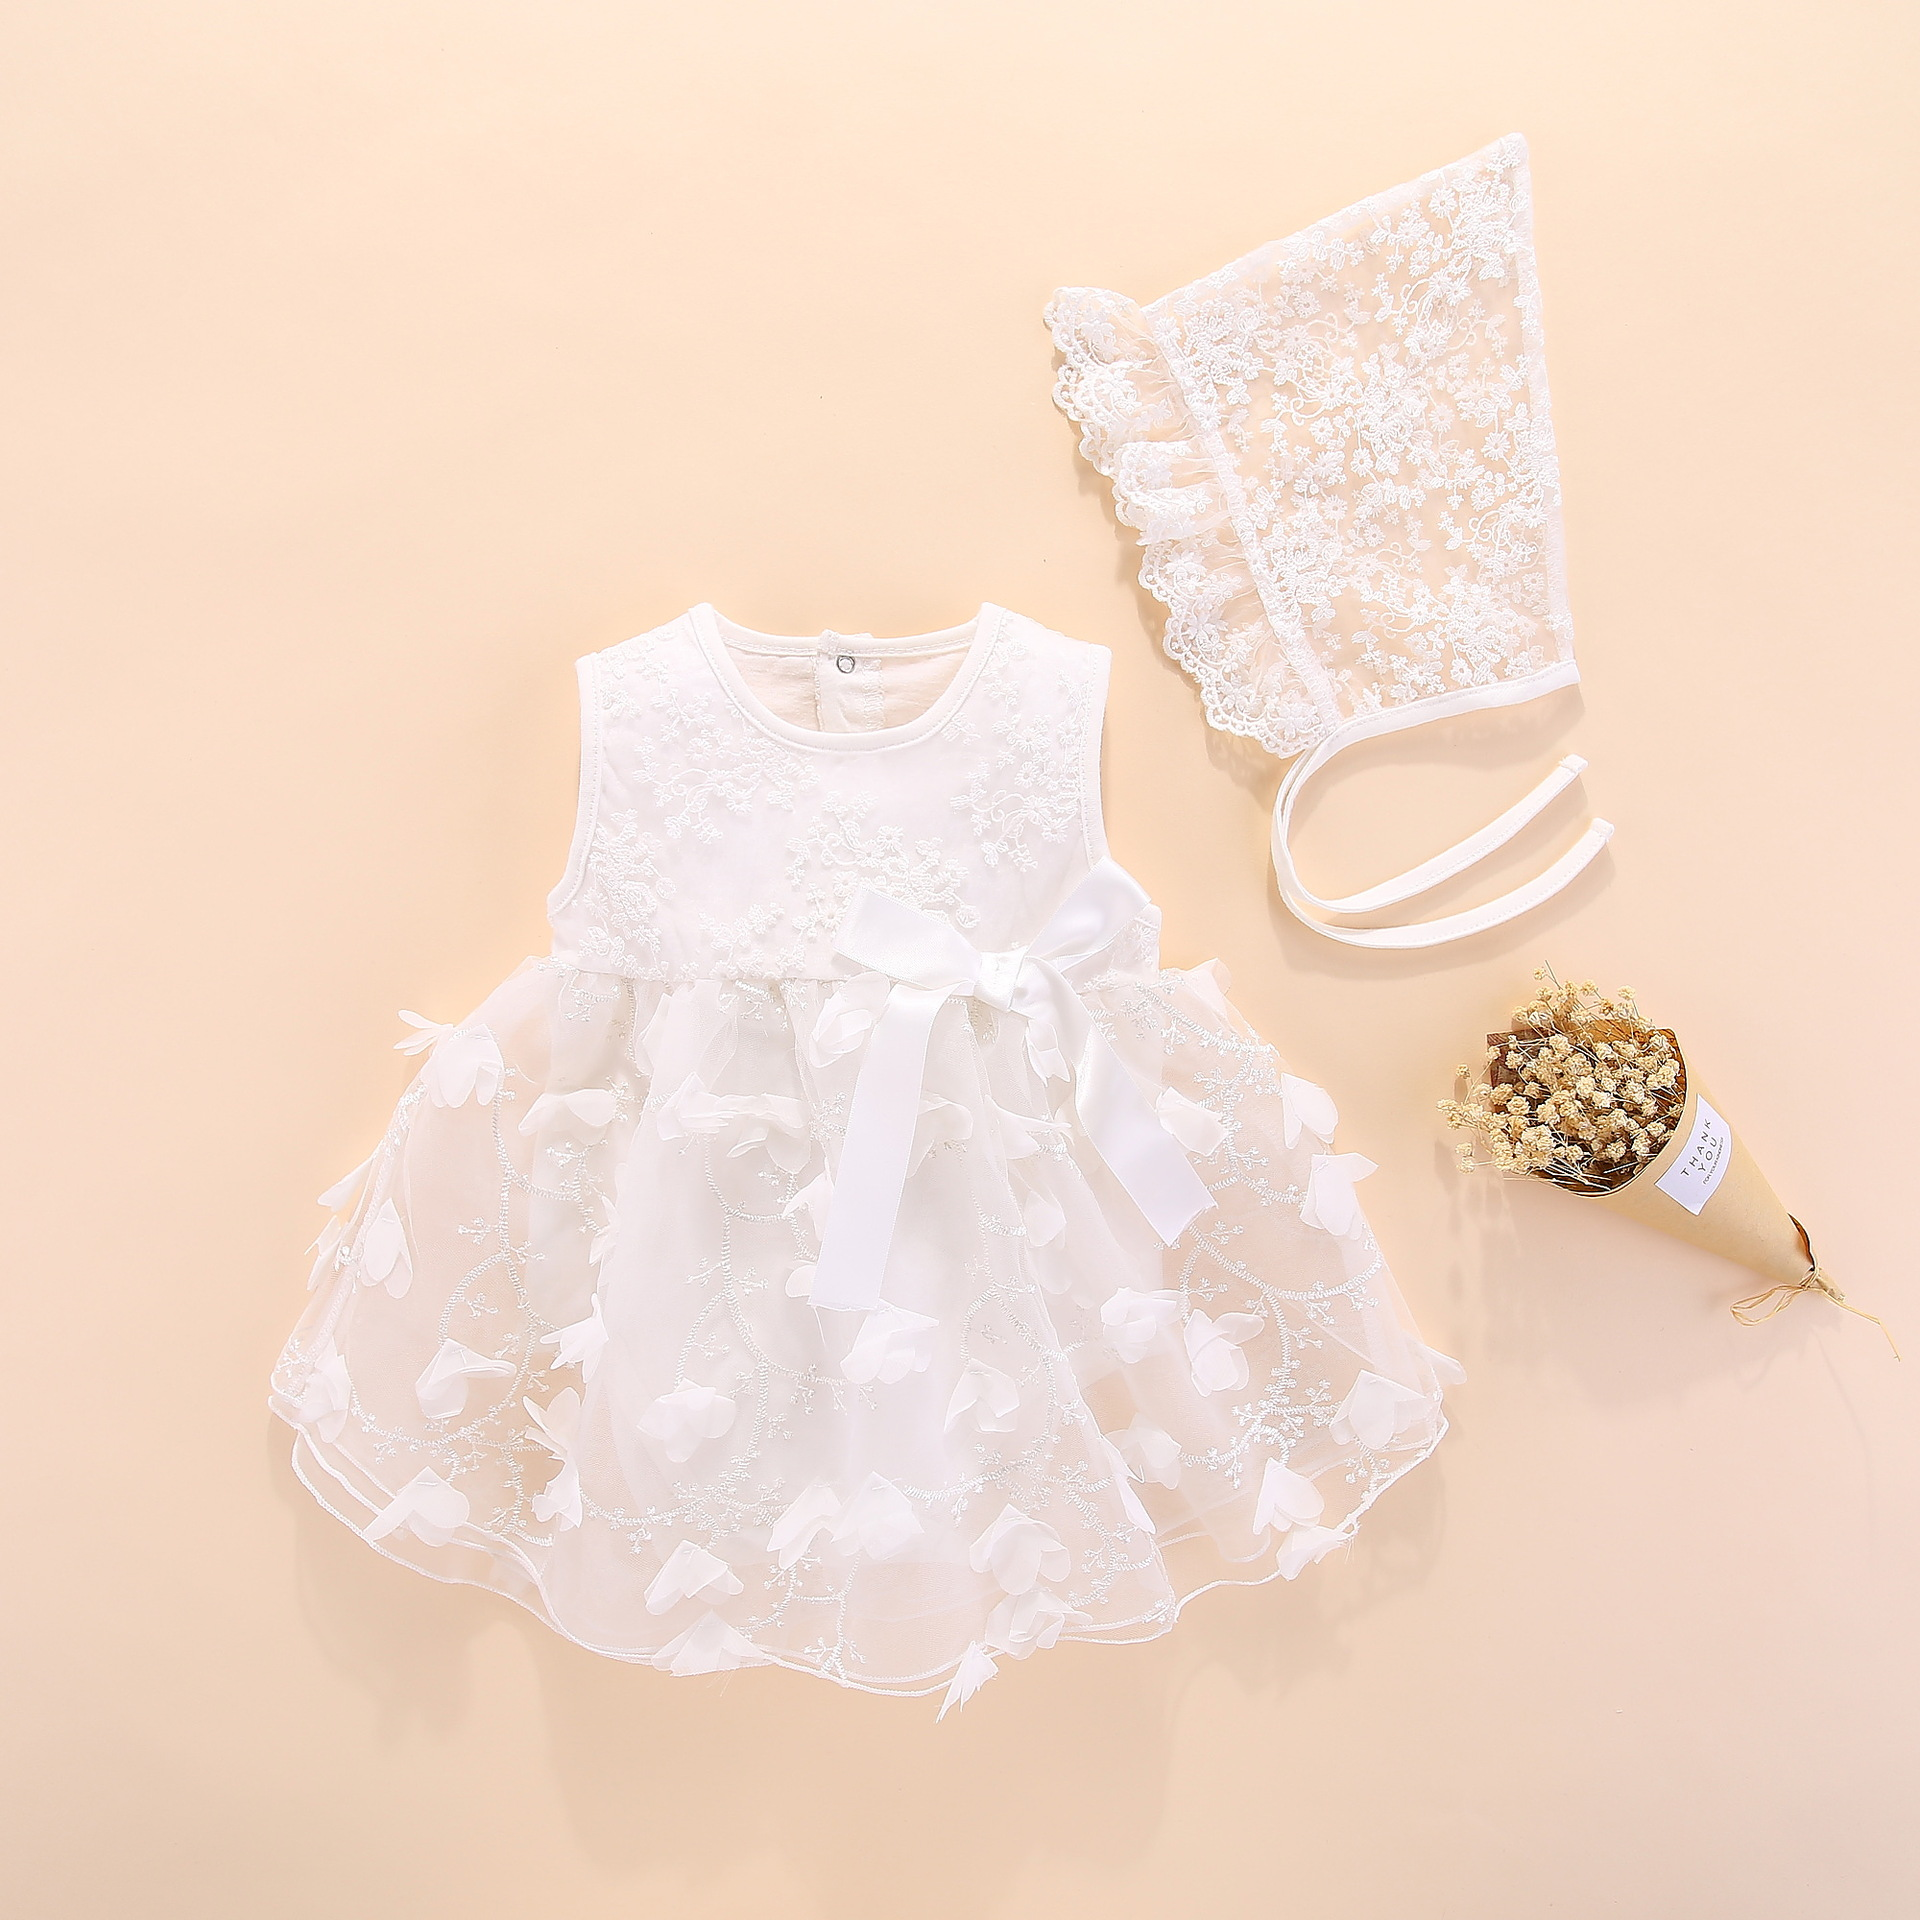 newborn baby girl dresses clothes summer with flower 0 3 6 month baby girl dress for party and wedding princess style clothes(China)